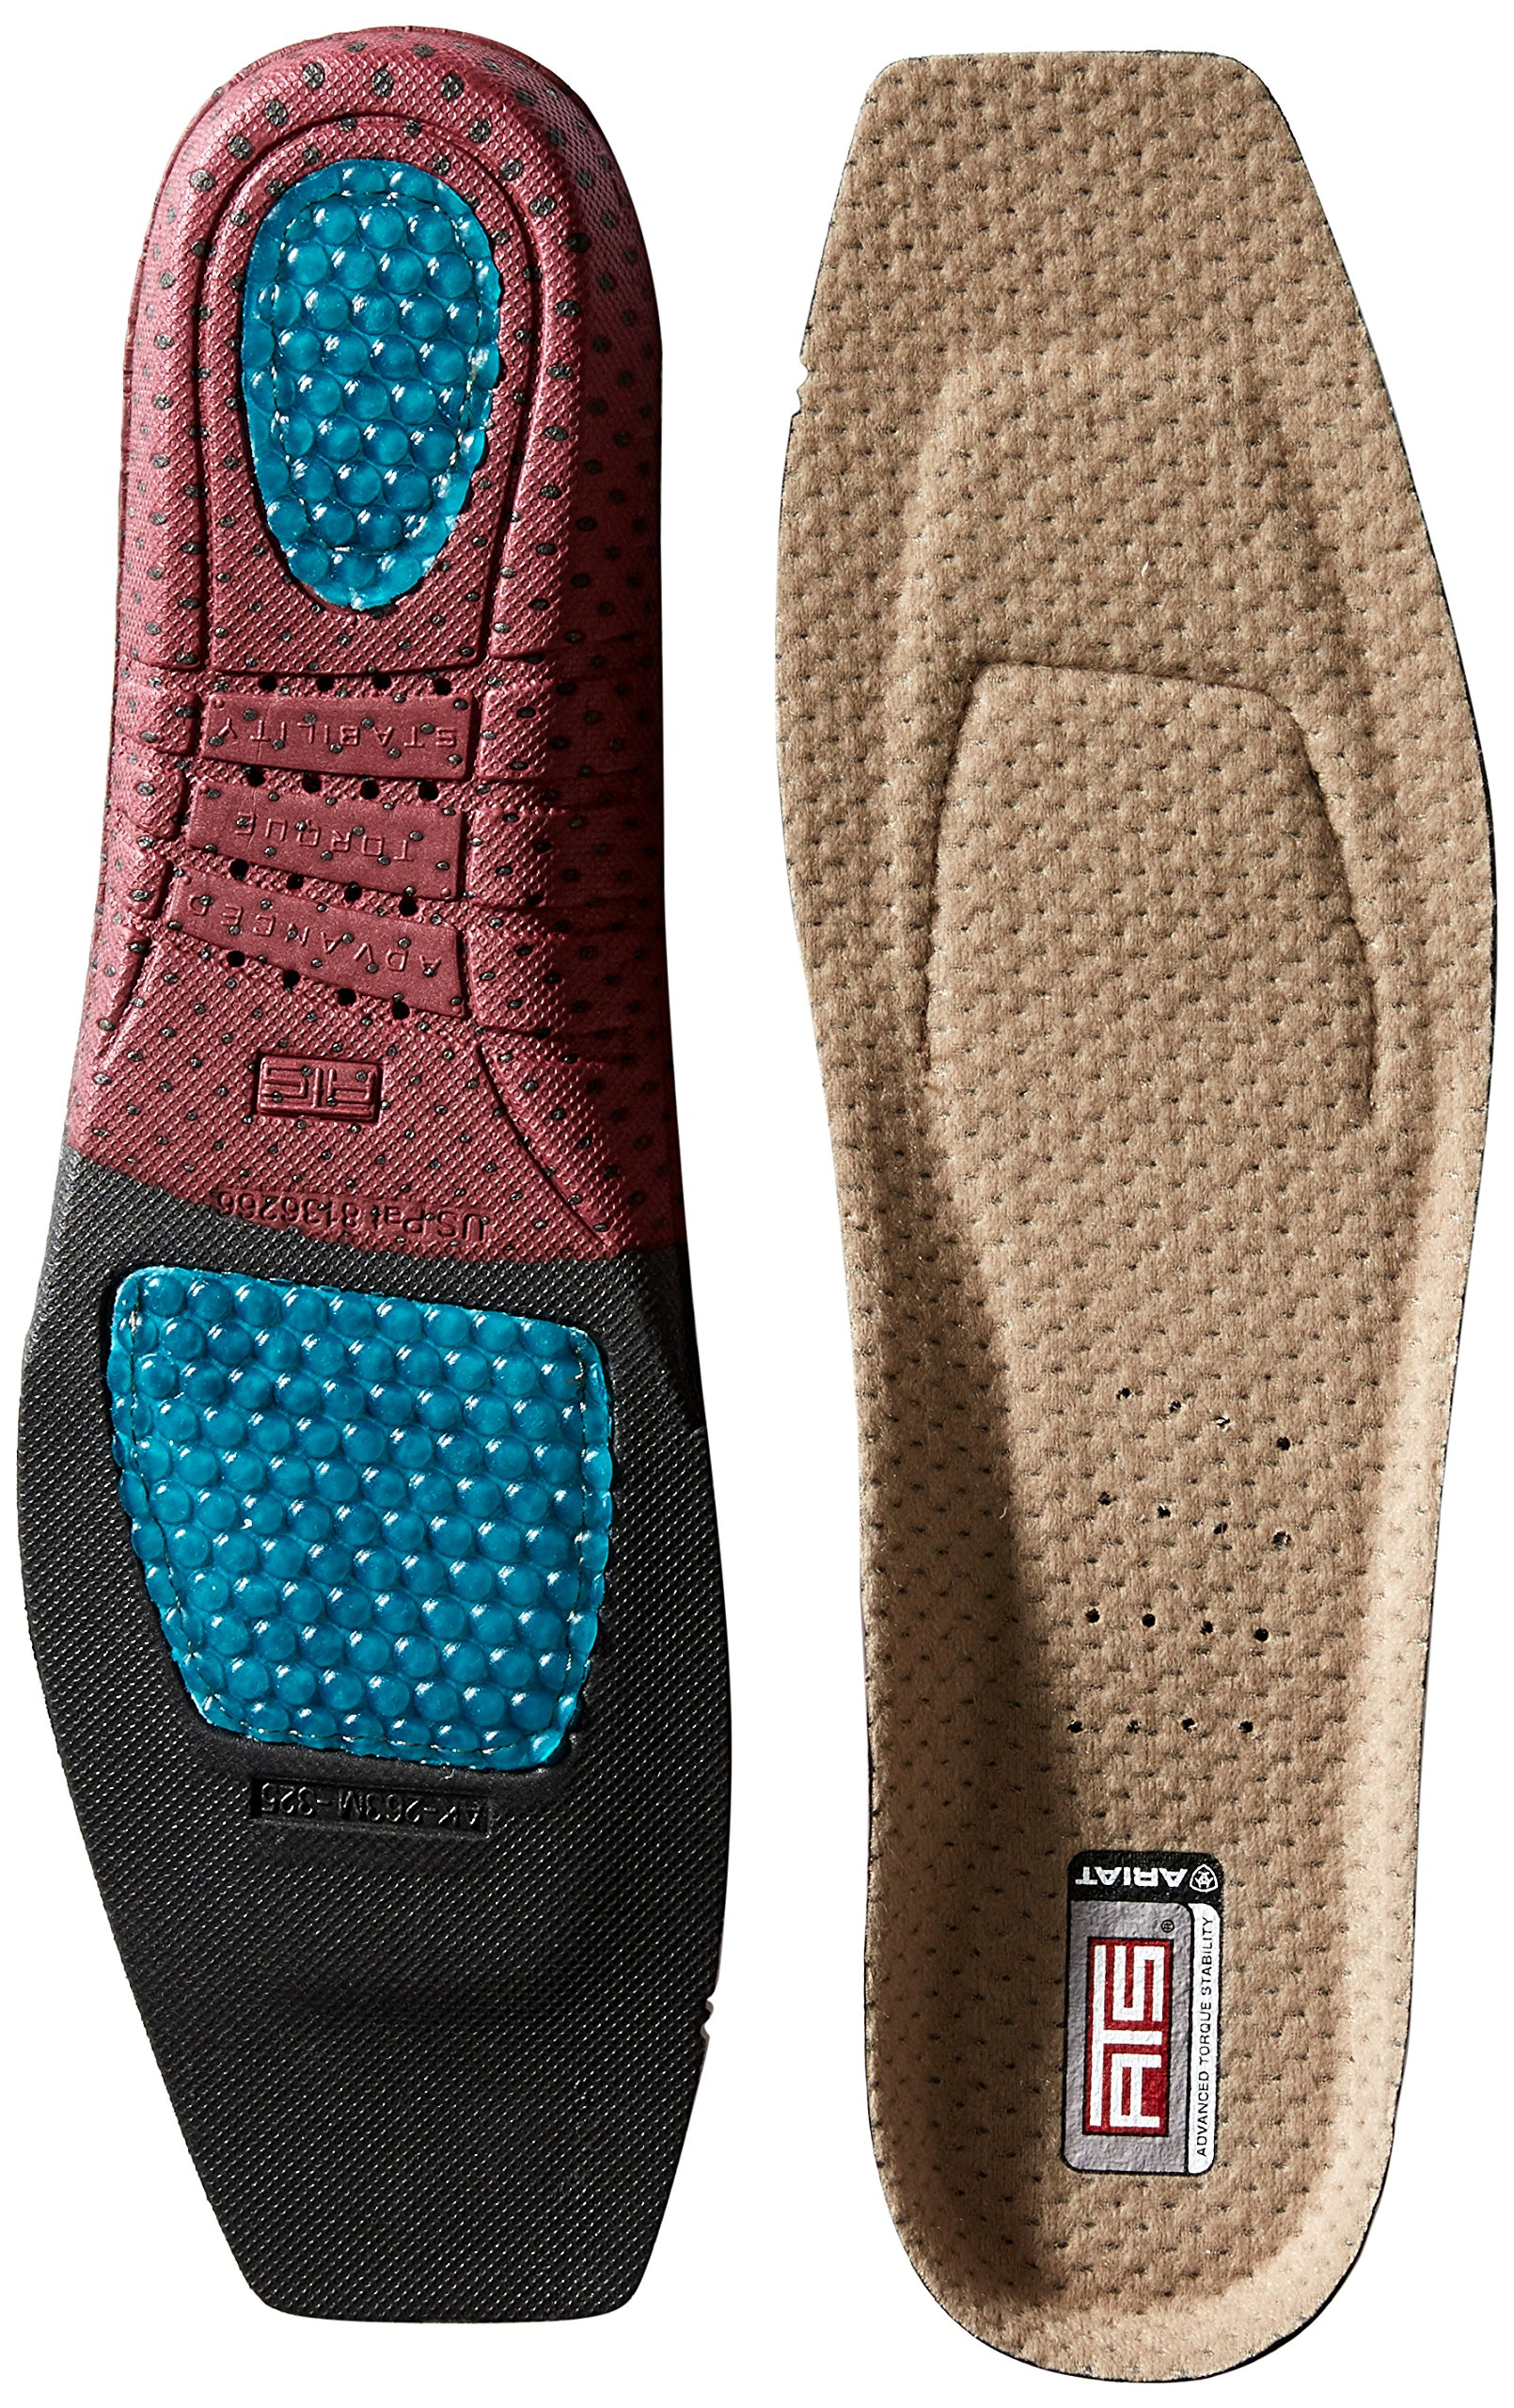 Ariat Men's Ats Footbed Wide Square Toe - 10008009, multi, 11 by Ariat (Image #1)